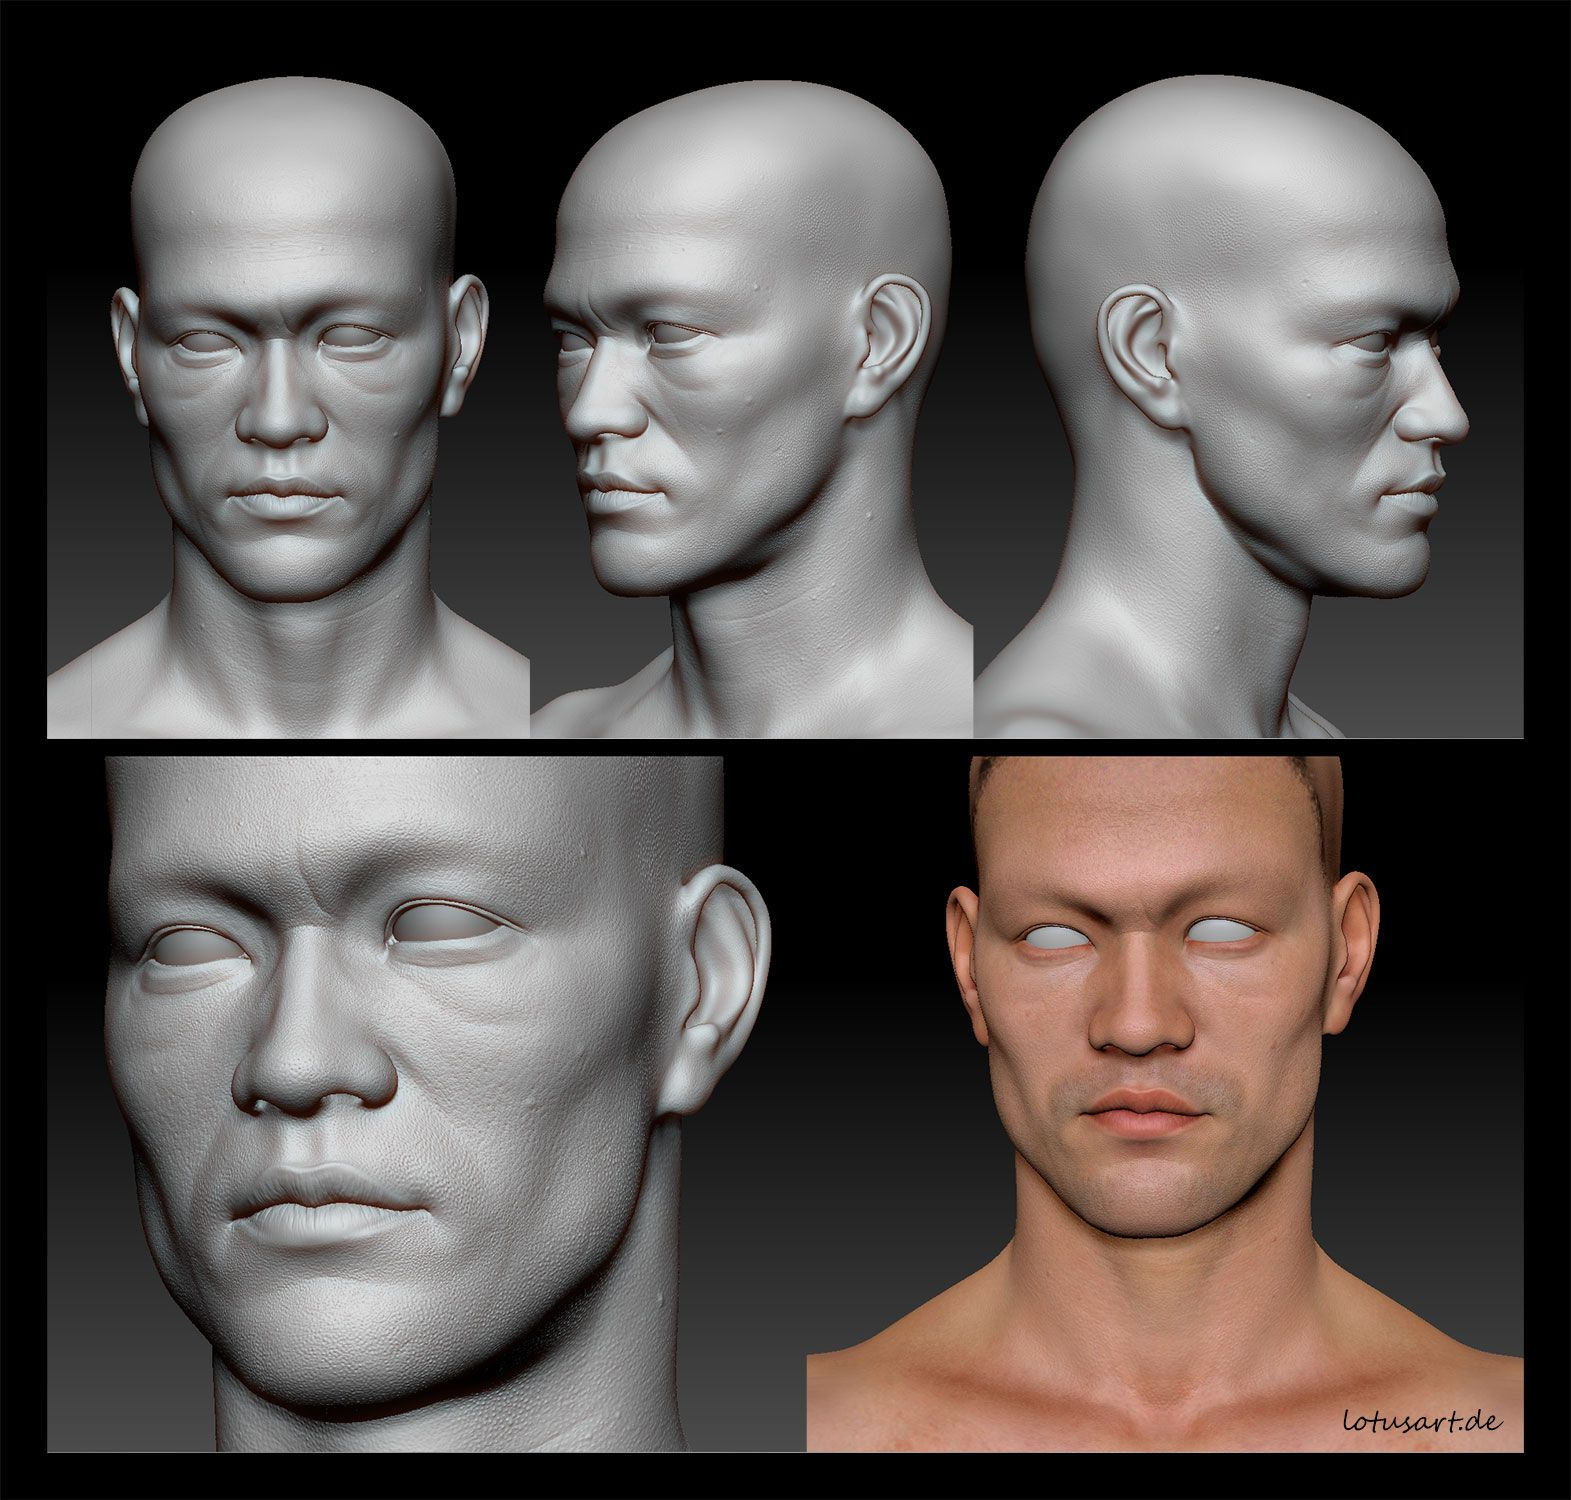 Bruce Lee Base Mesh Sculpted In 3d Using Zbrush By Lotusart Female Face Drawing Face Anatomy Digital Sculpture